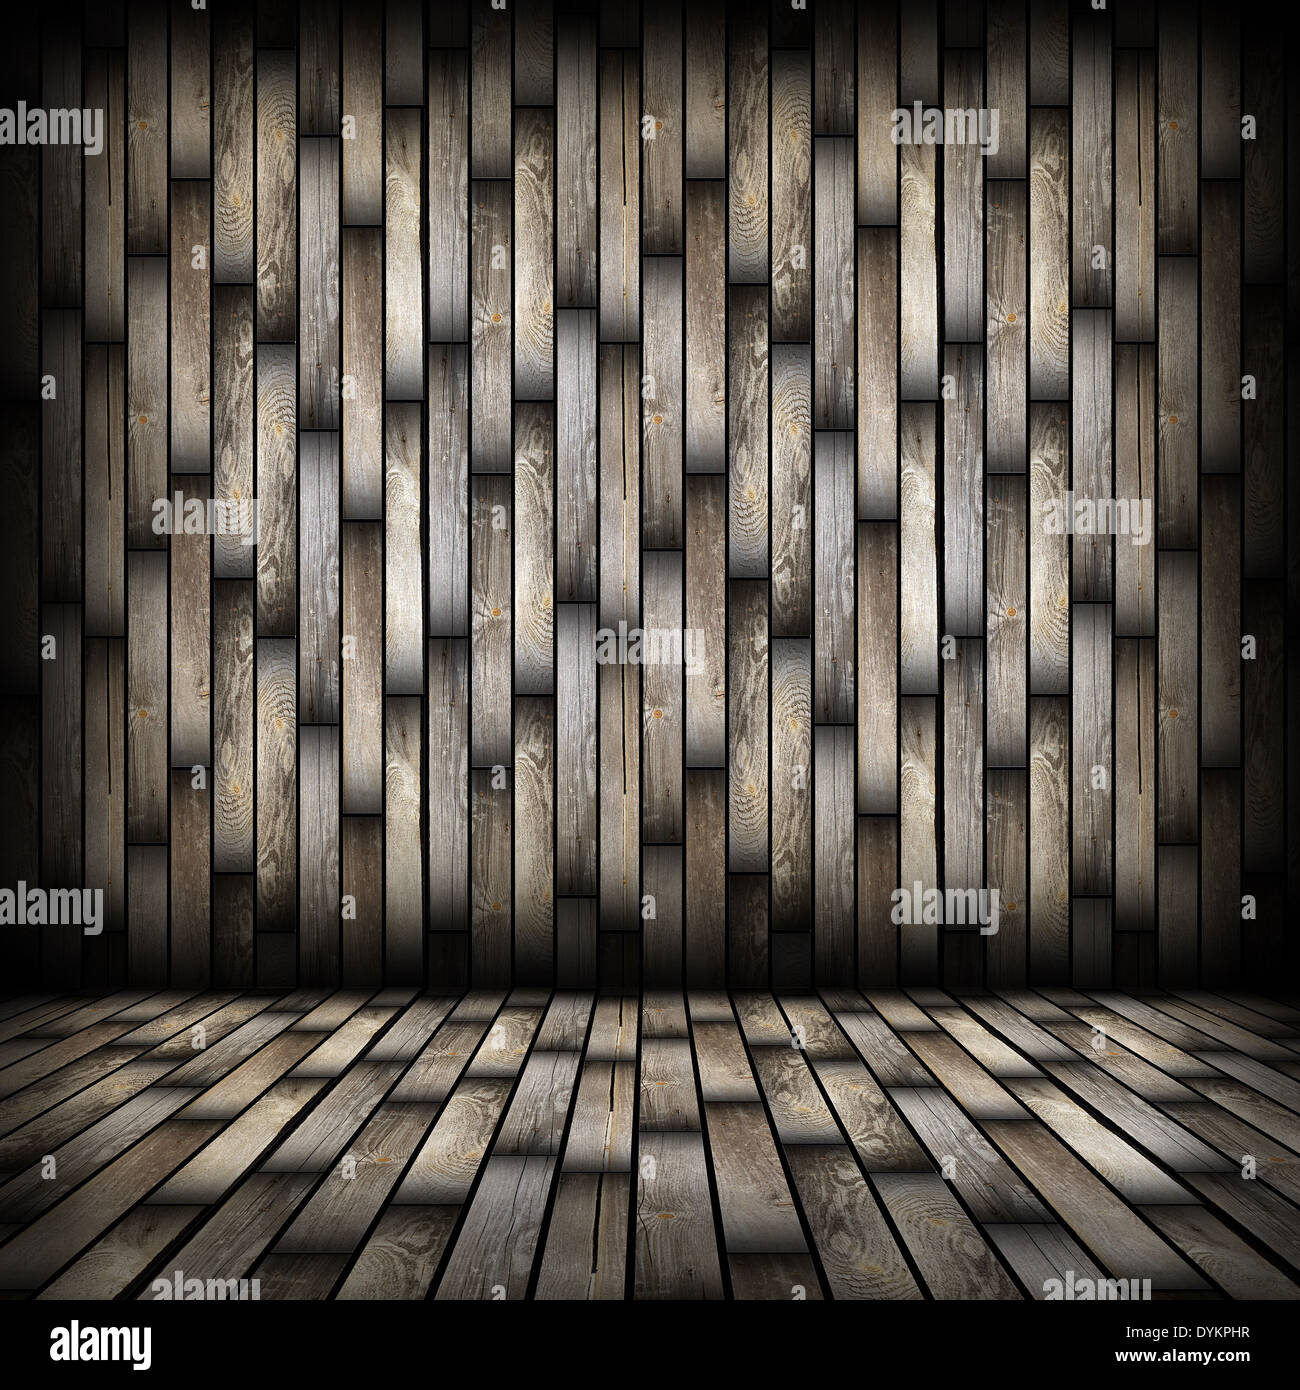 Dark Wood Planks Finishing On Interior Backdrop, Architectural Room  Background For Your Design With Wooden Floor And Wall